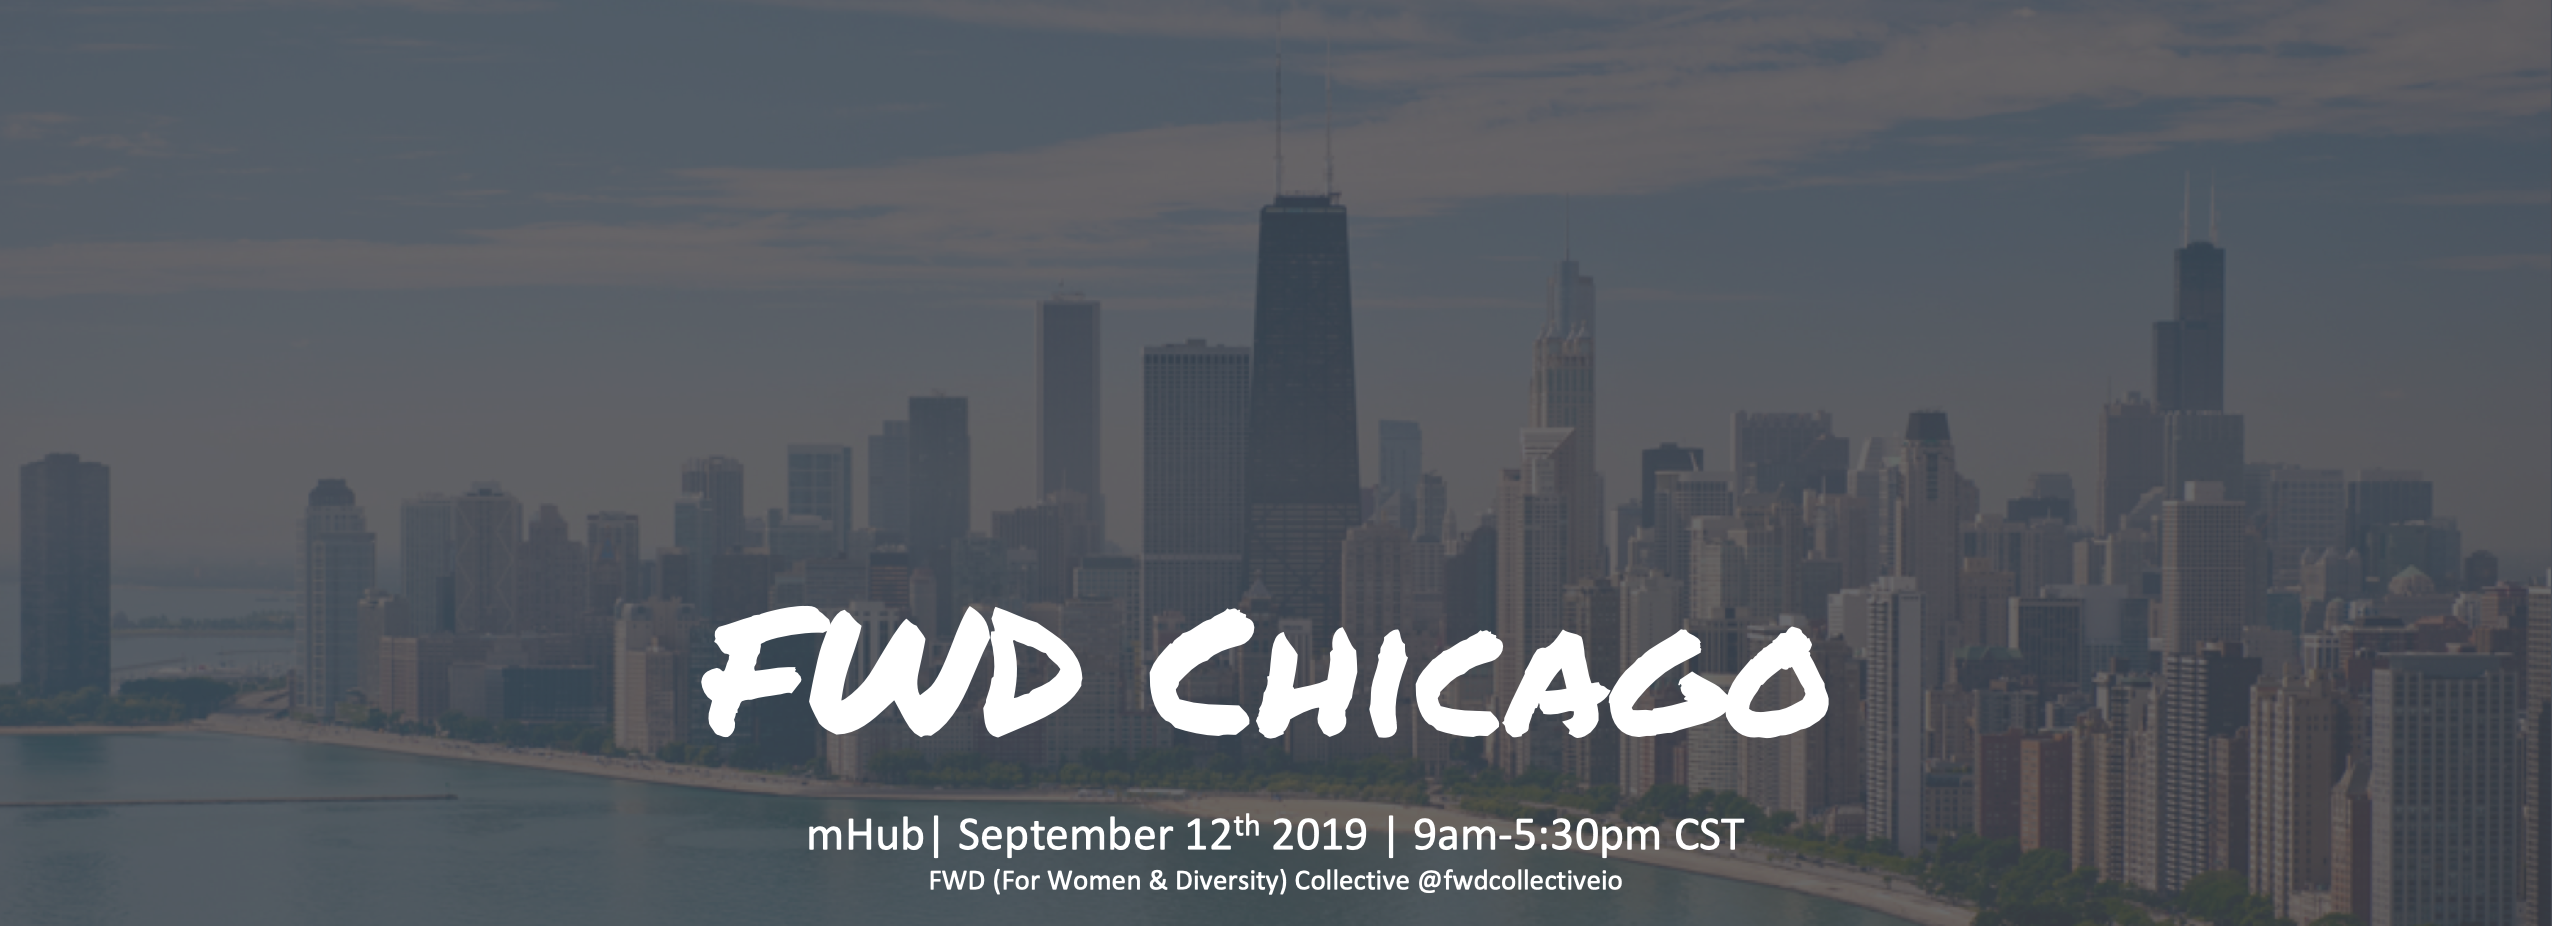 FWD (For Women & Diversity) Collective Summit Chicago 2019